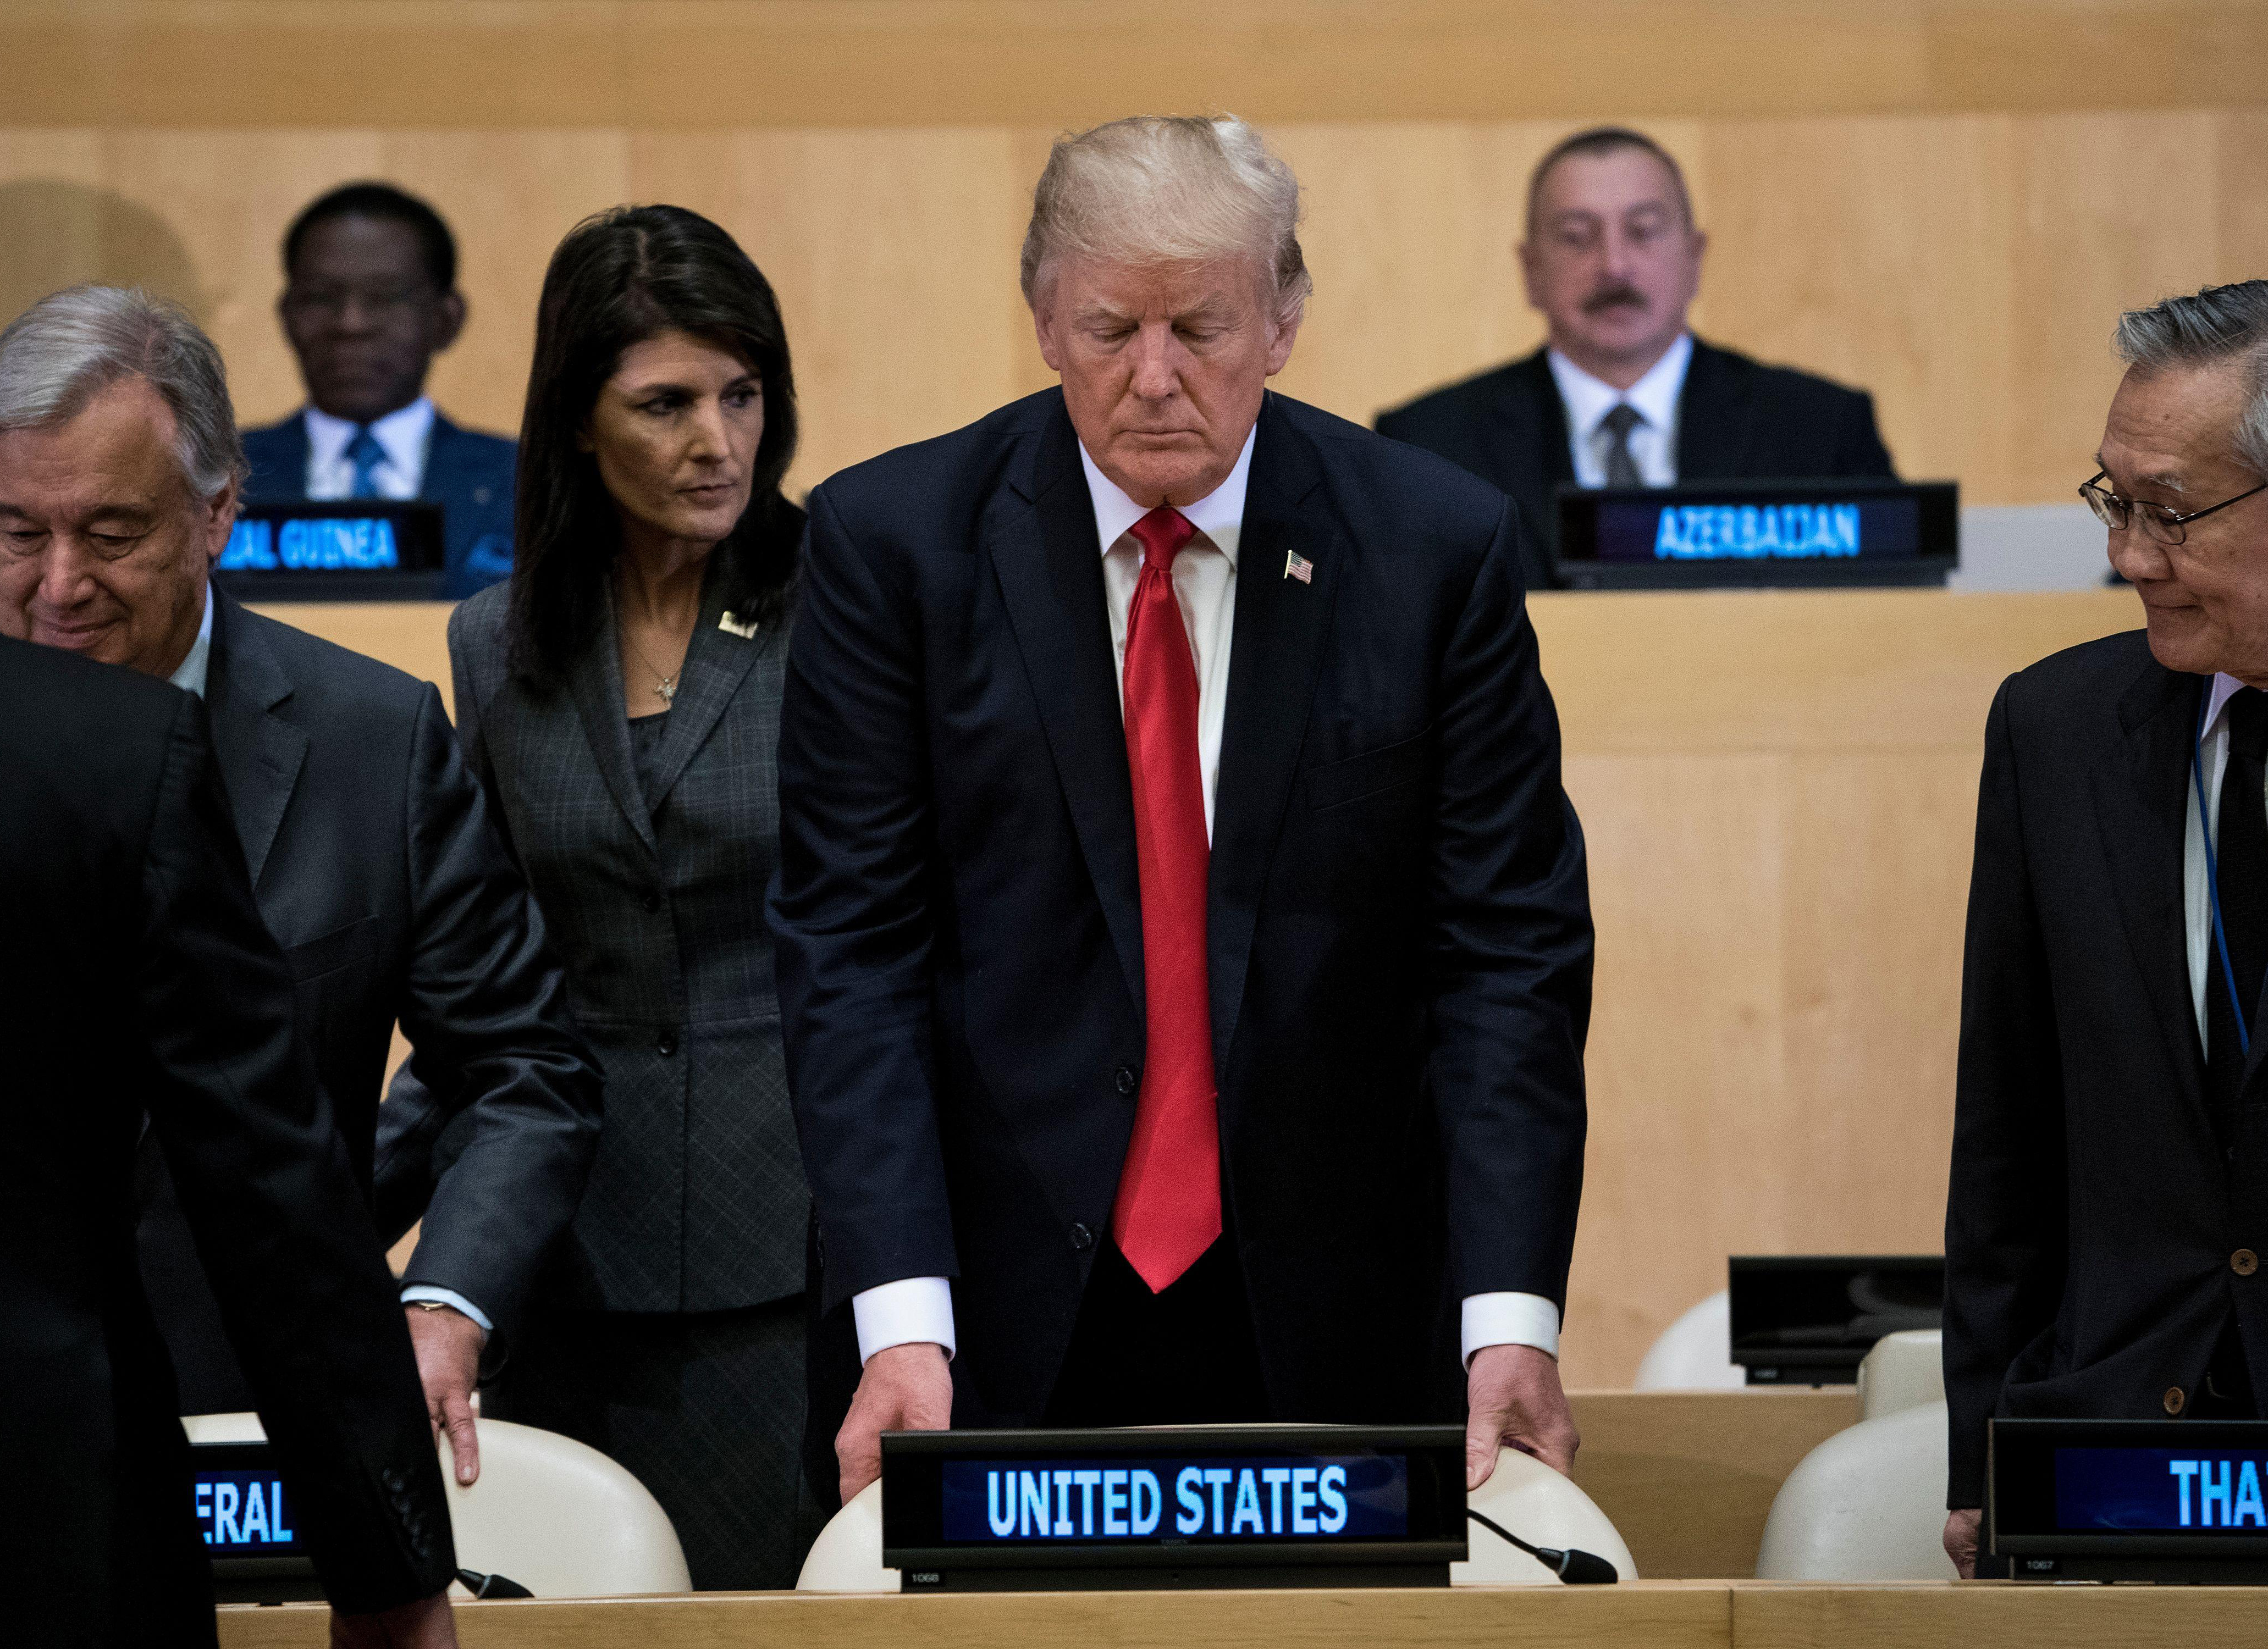 President Trump and proceeding of United Nations